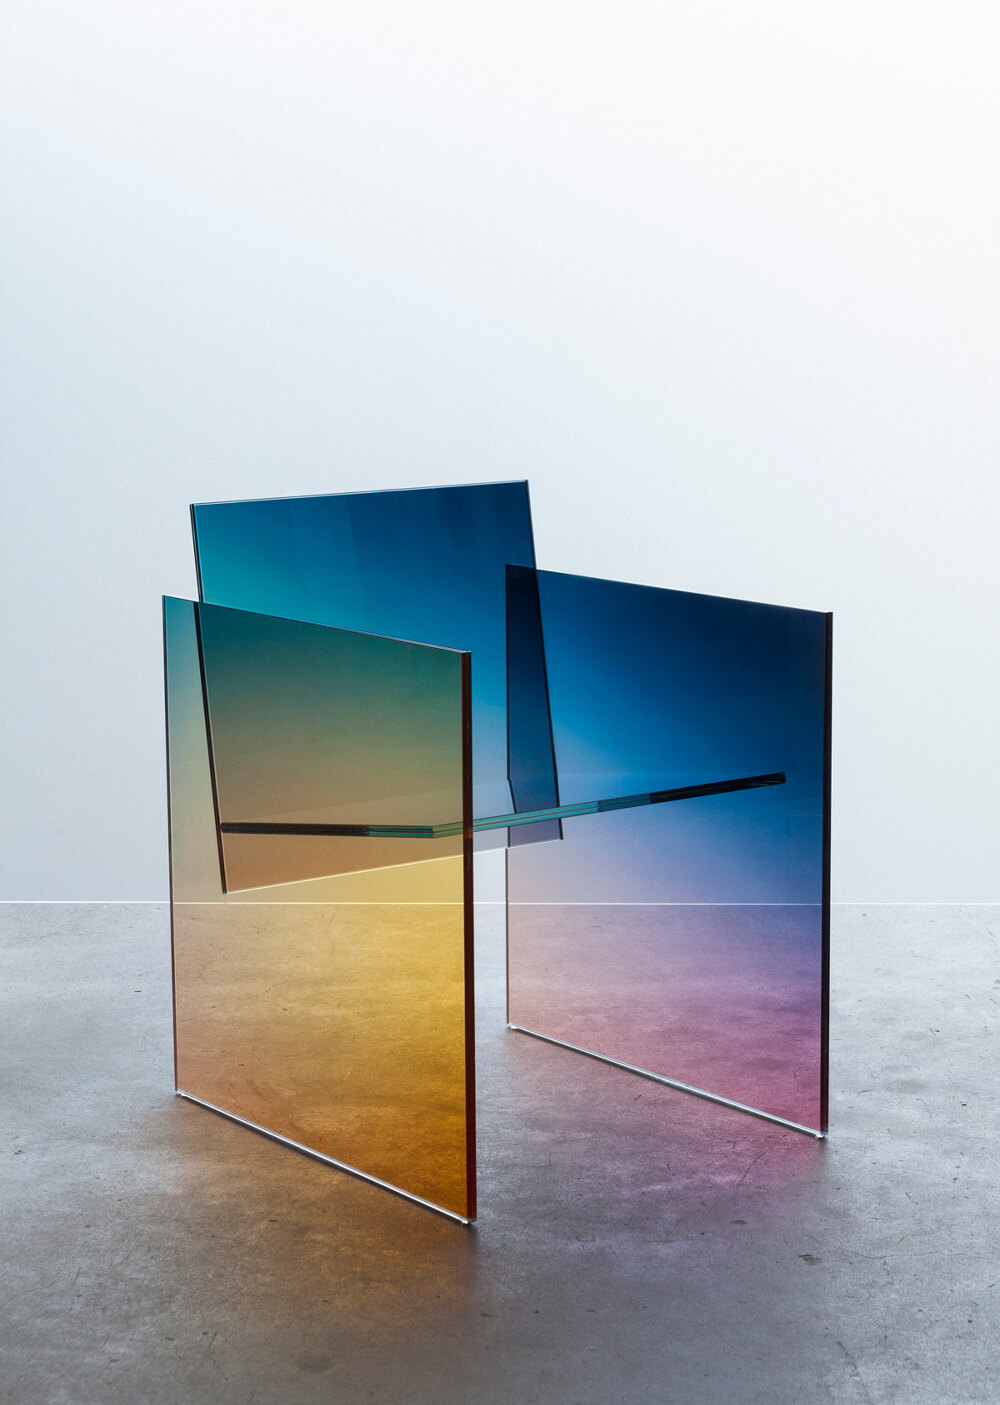 Mintsquare_Selected_Germans Ermics_Chromatic manifestation of glass geometry